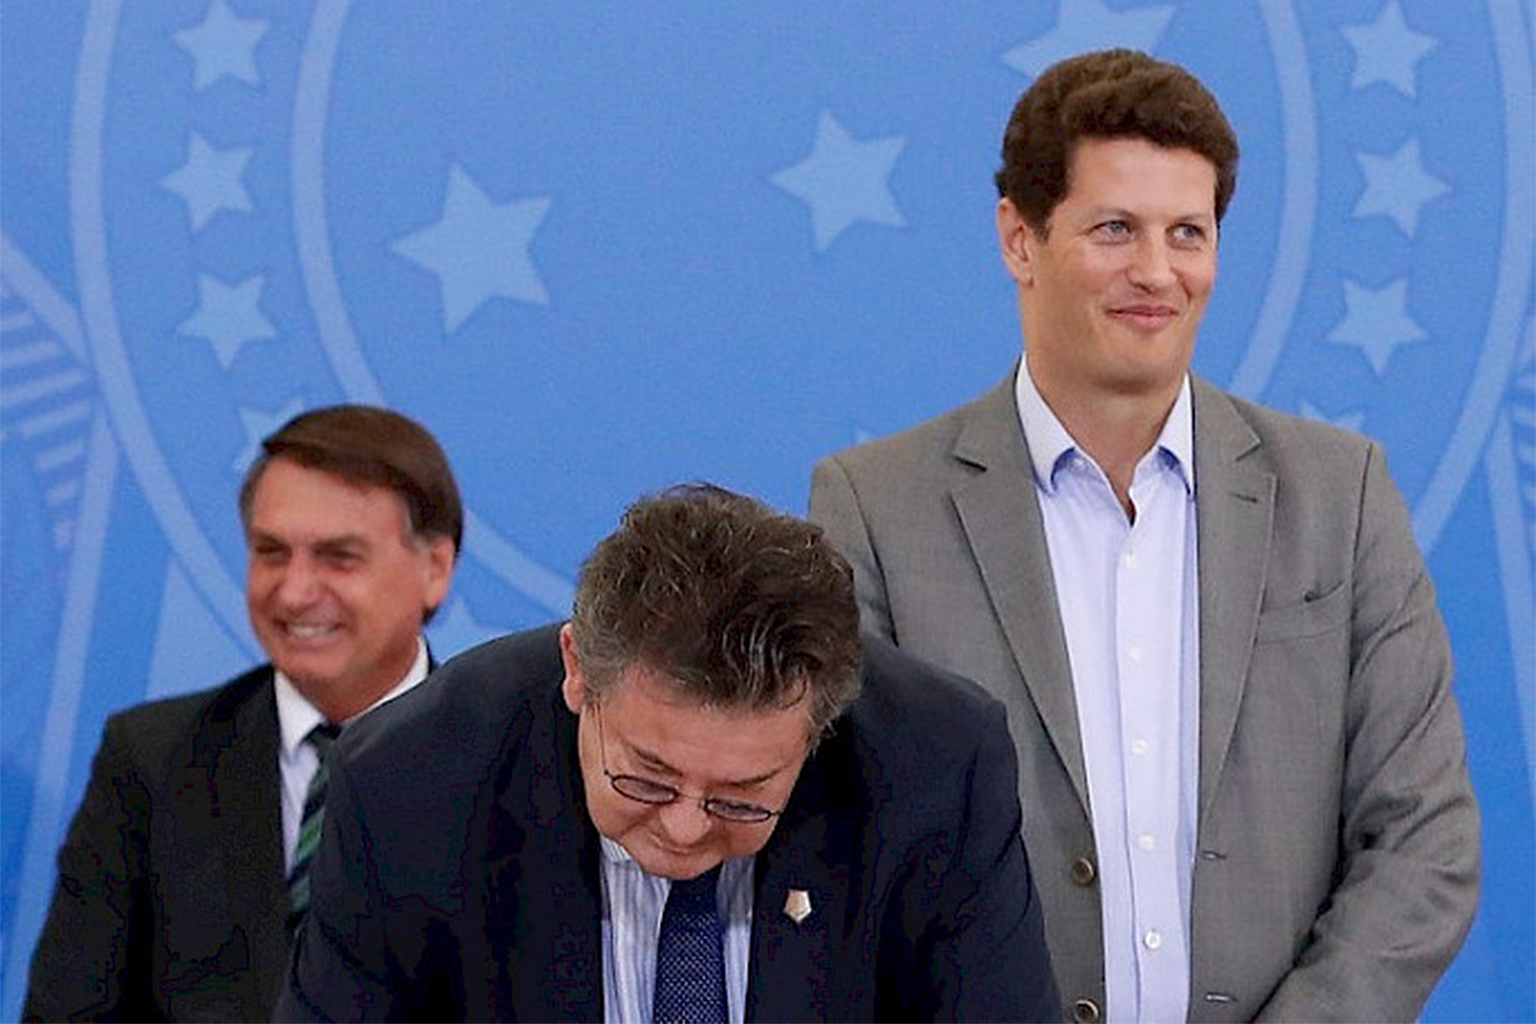 Brazilian President Jair Bolsonaro, Carrefour Latin America president Noel Prioux, and Brazilian Environment Minister Ricardo Salles at the signing of the Adopt-a-Park agreement.